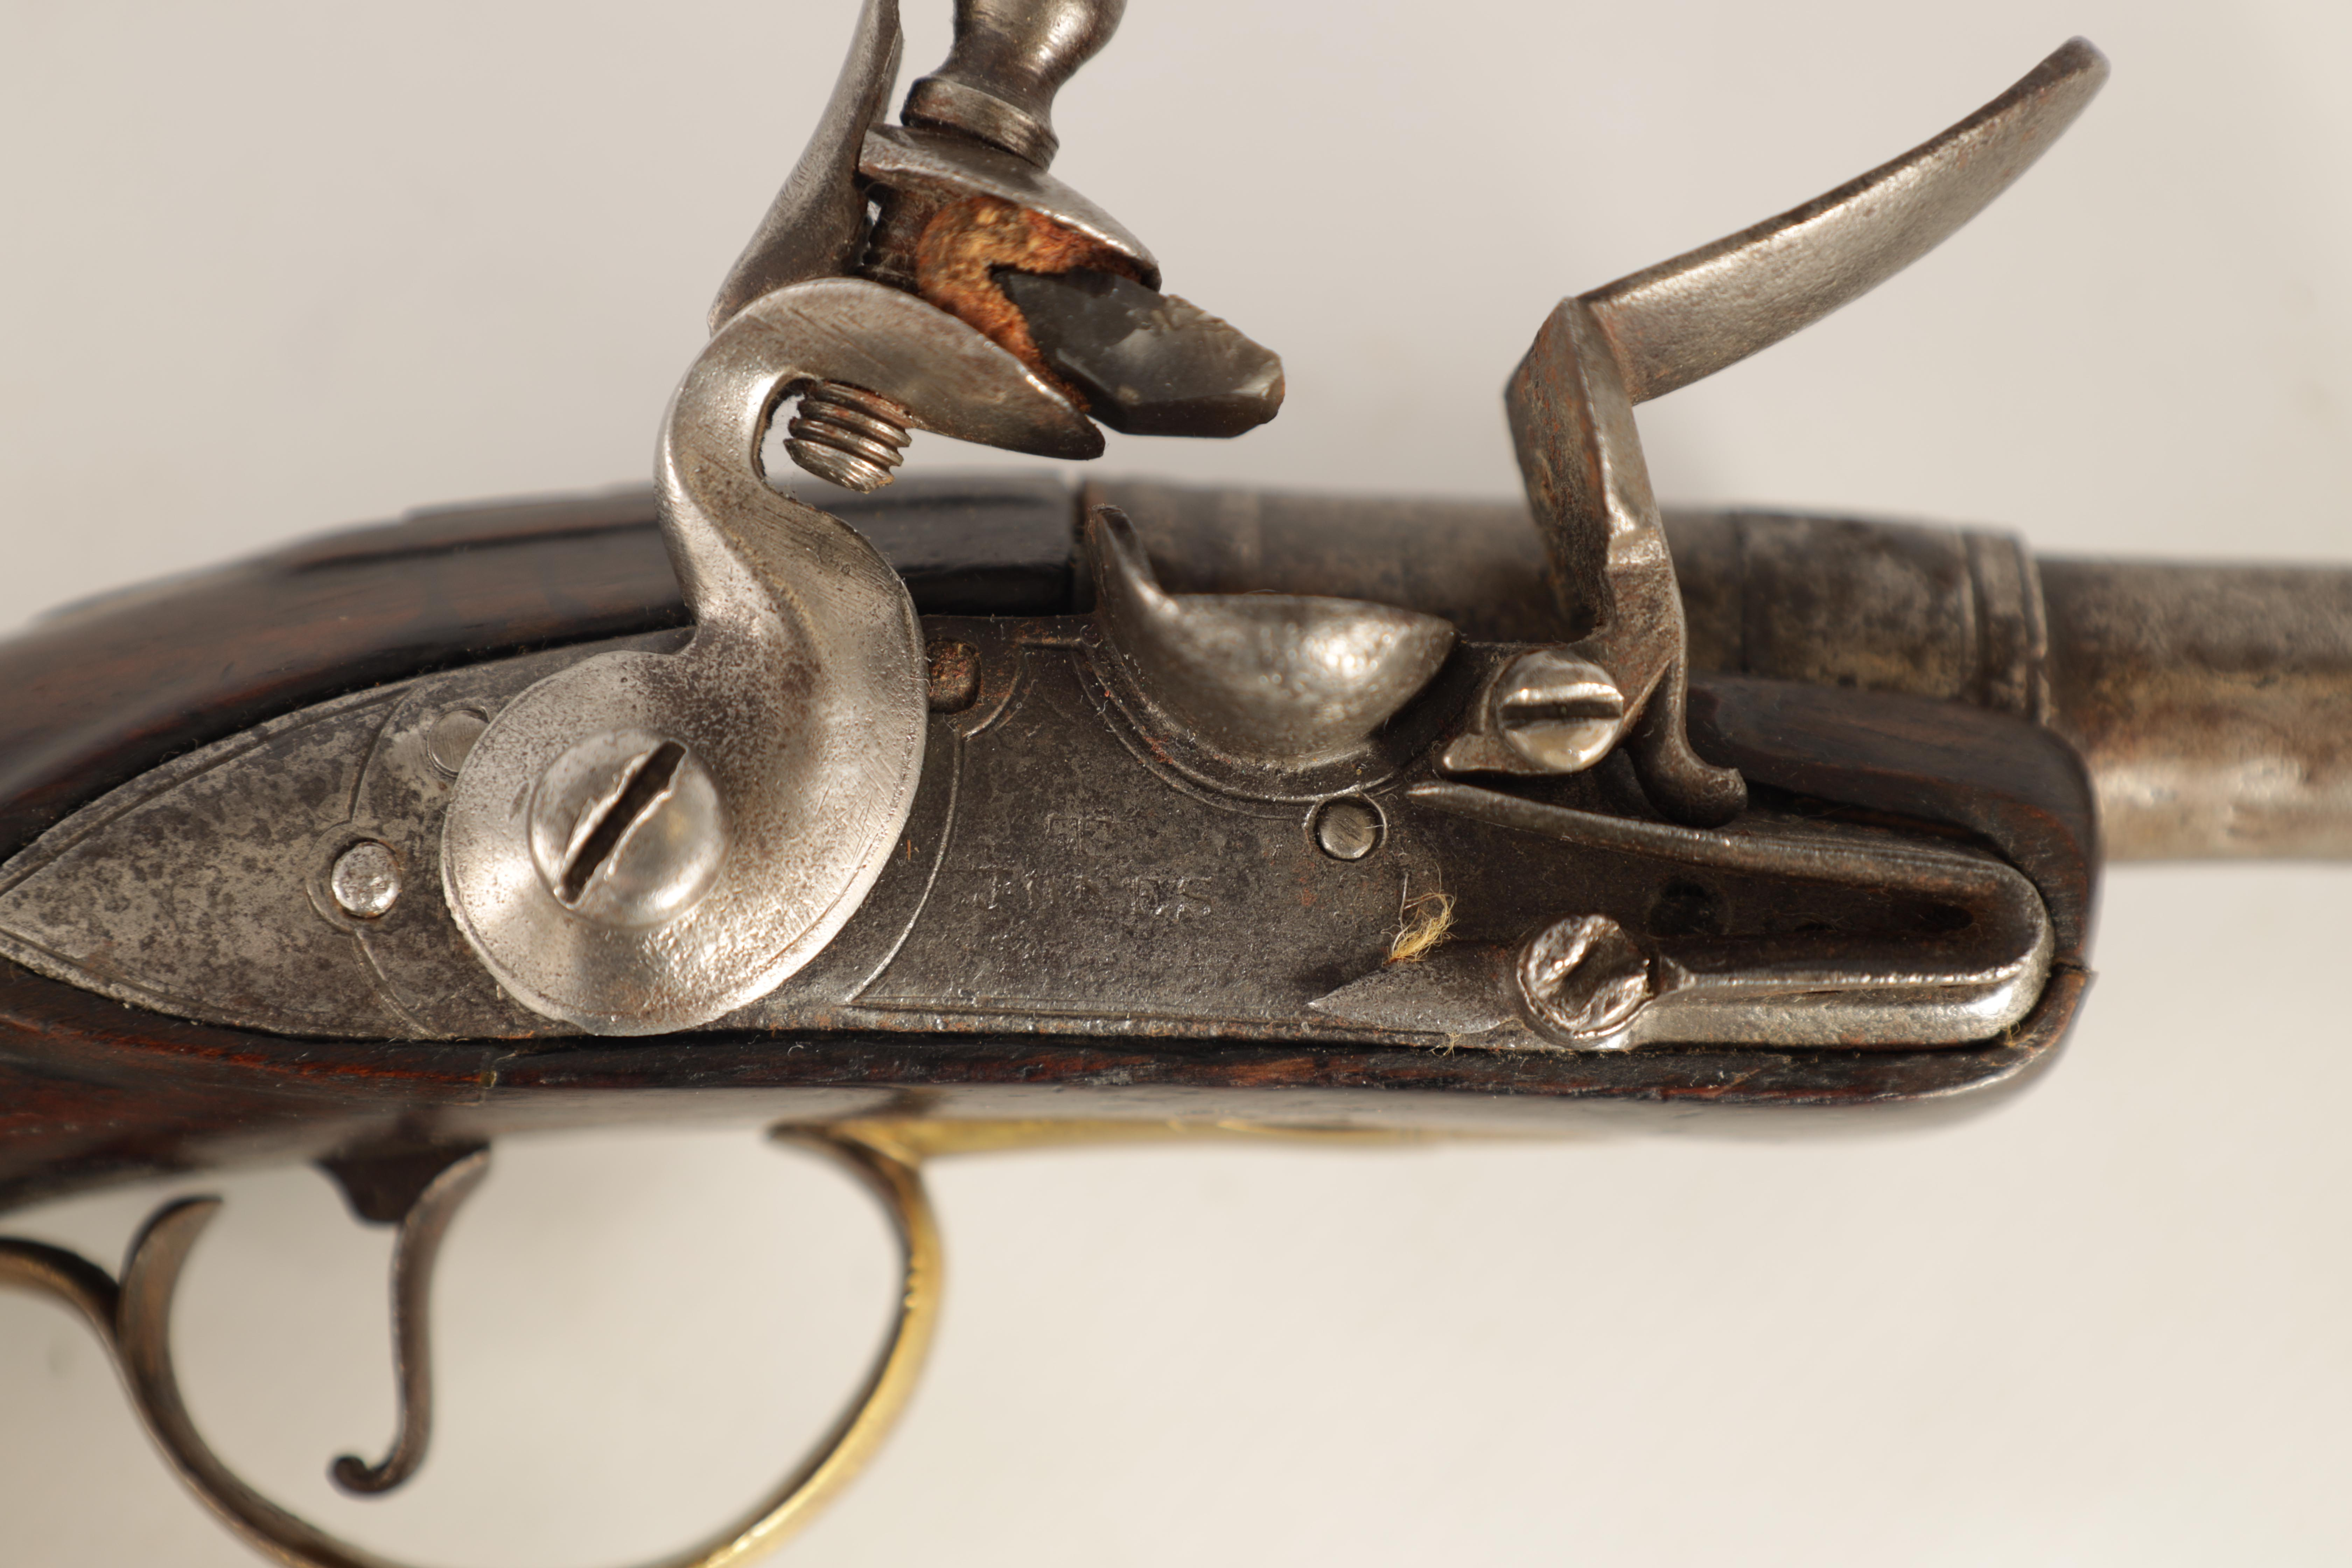 T. JONES. A PAIR OF EARLY 18TH CENTURY FLINTLOCK POCKET PISTOLS with turn-off cannon barrel, - Image 3 of 14